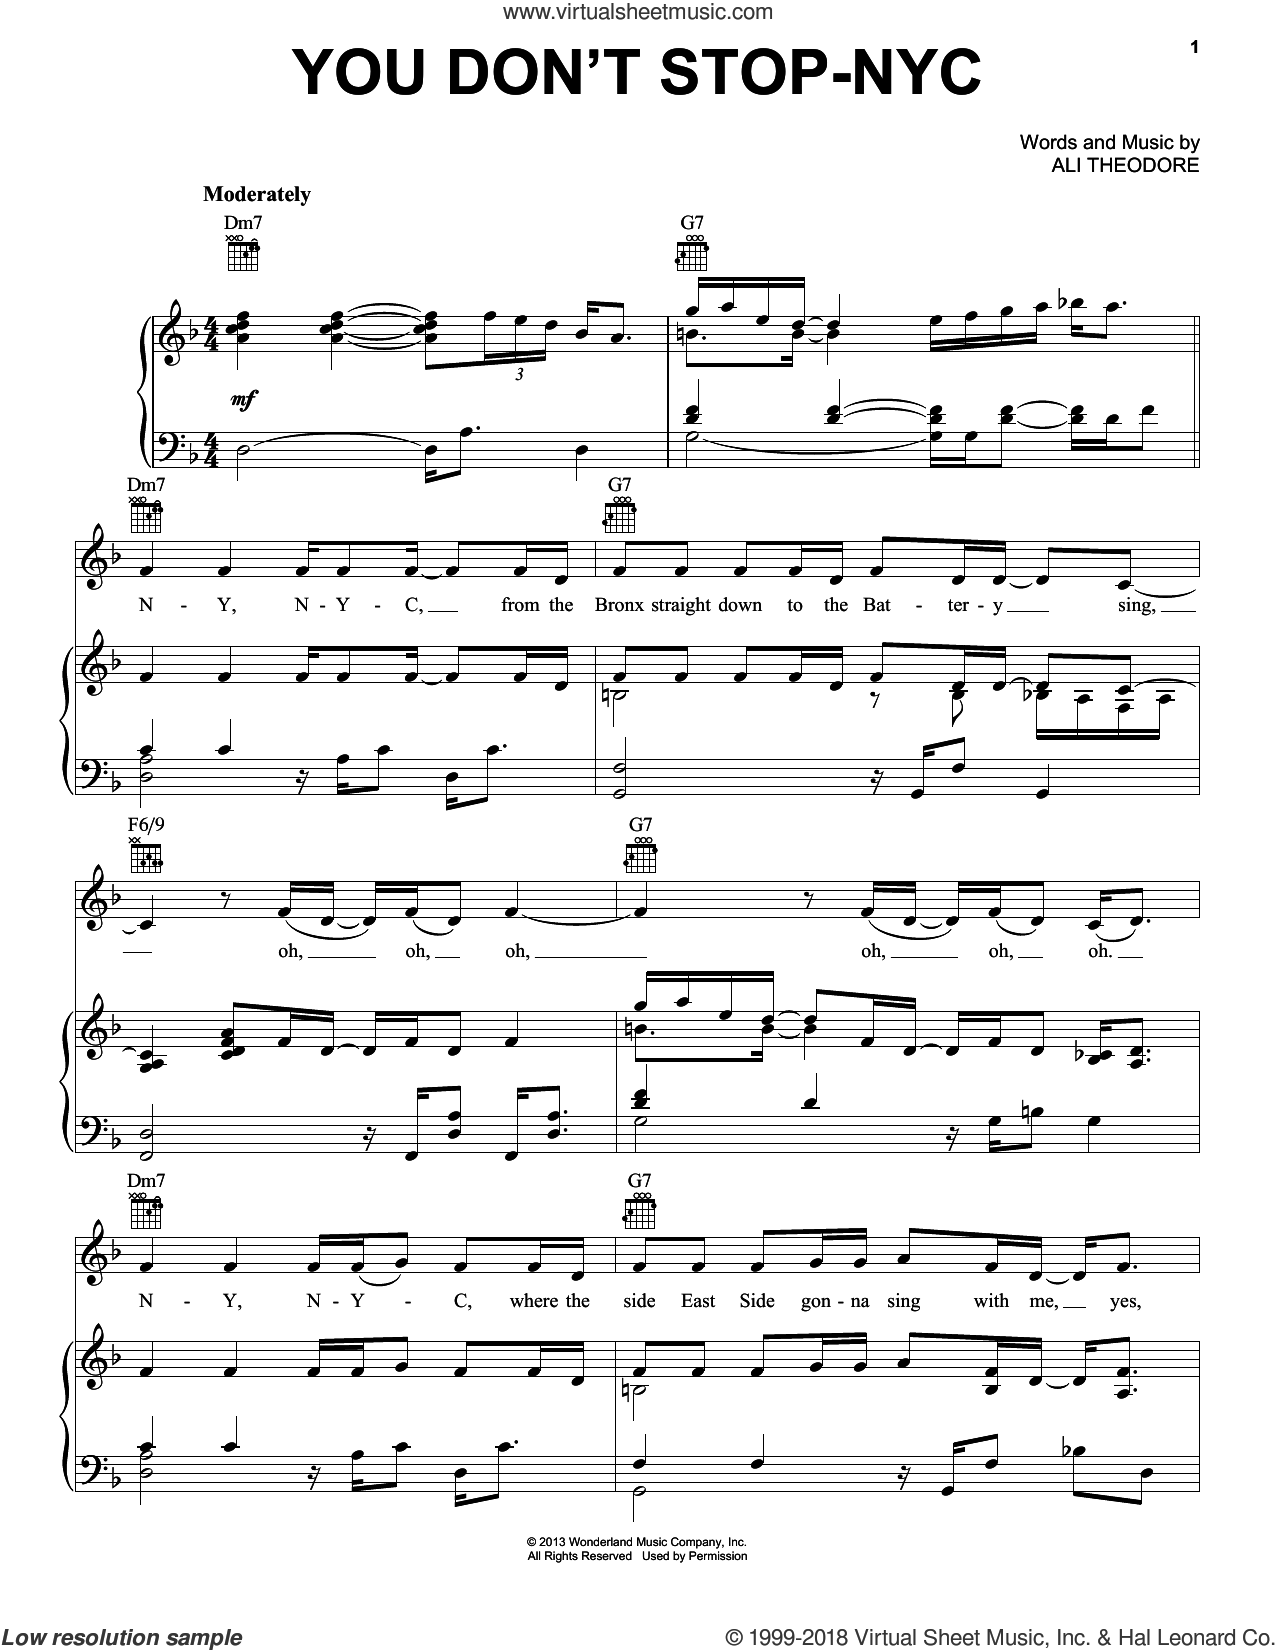 You Don't Stop-NYC sheet music for voice, piano or guitar by Mark Mancina, Ali Theodore and Planes (Movie), intermediate skill level